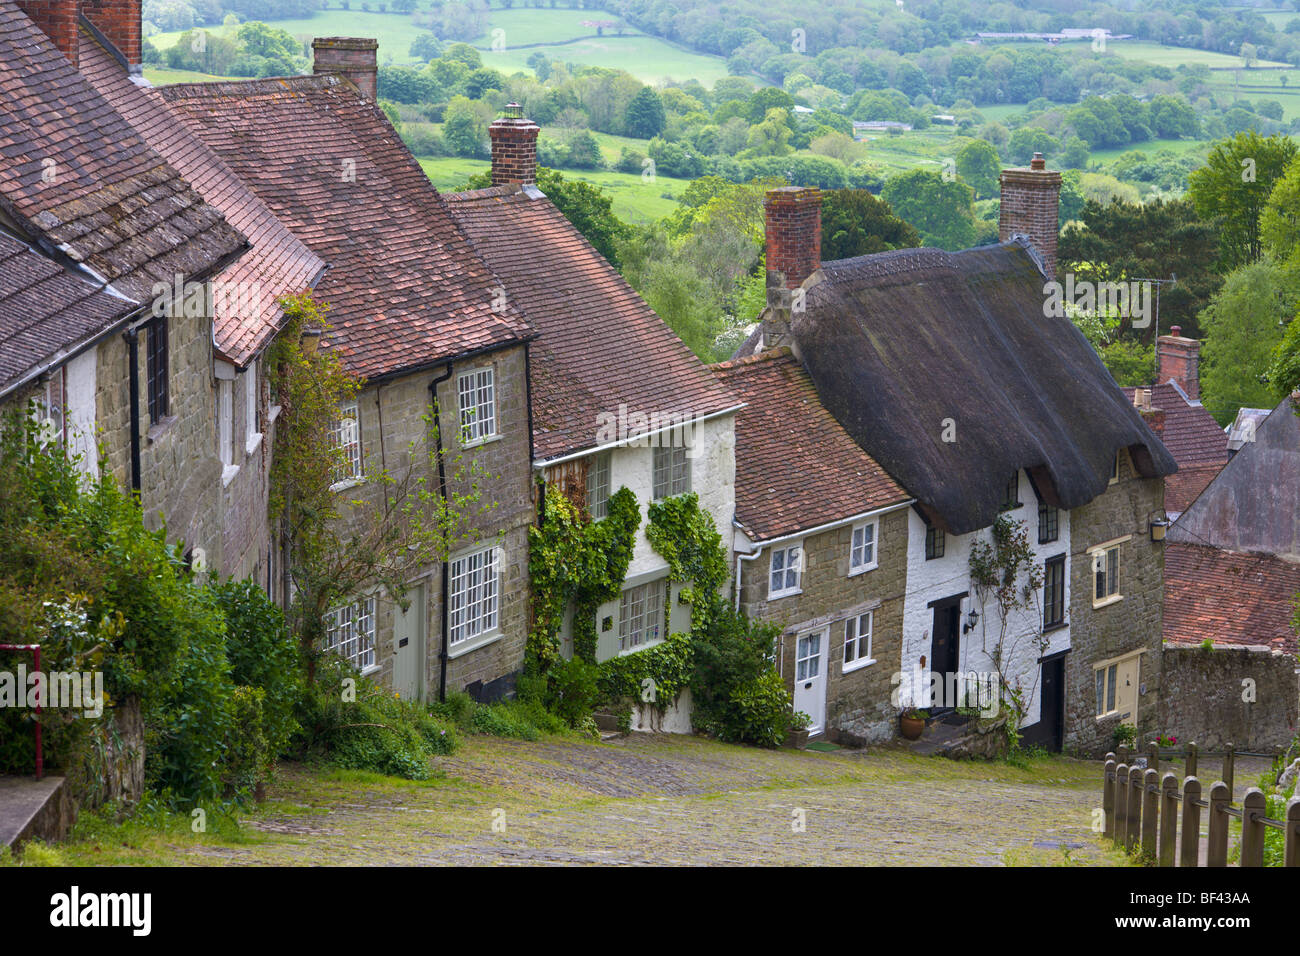 Cottages at 'Gold Hill' Shaftesbury Dorset England - Stock Image